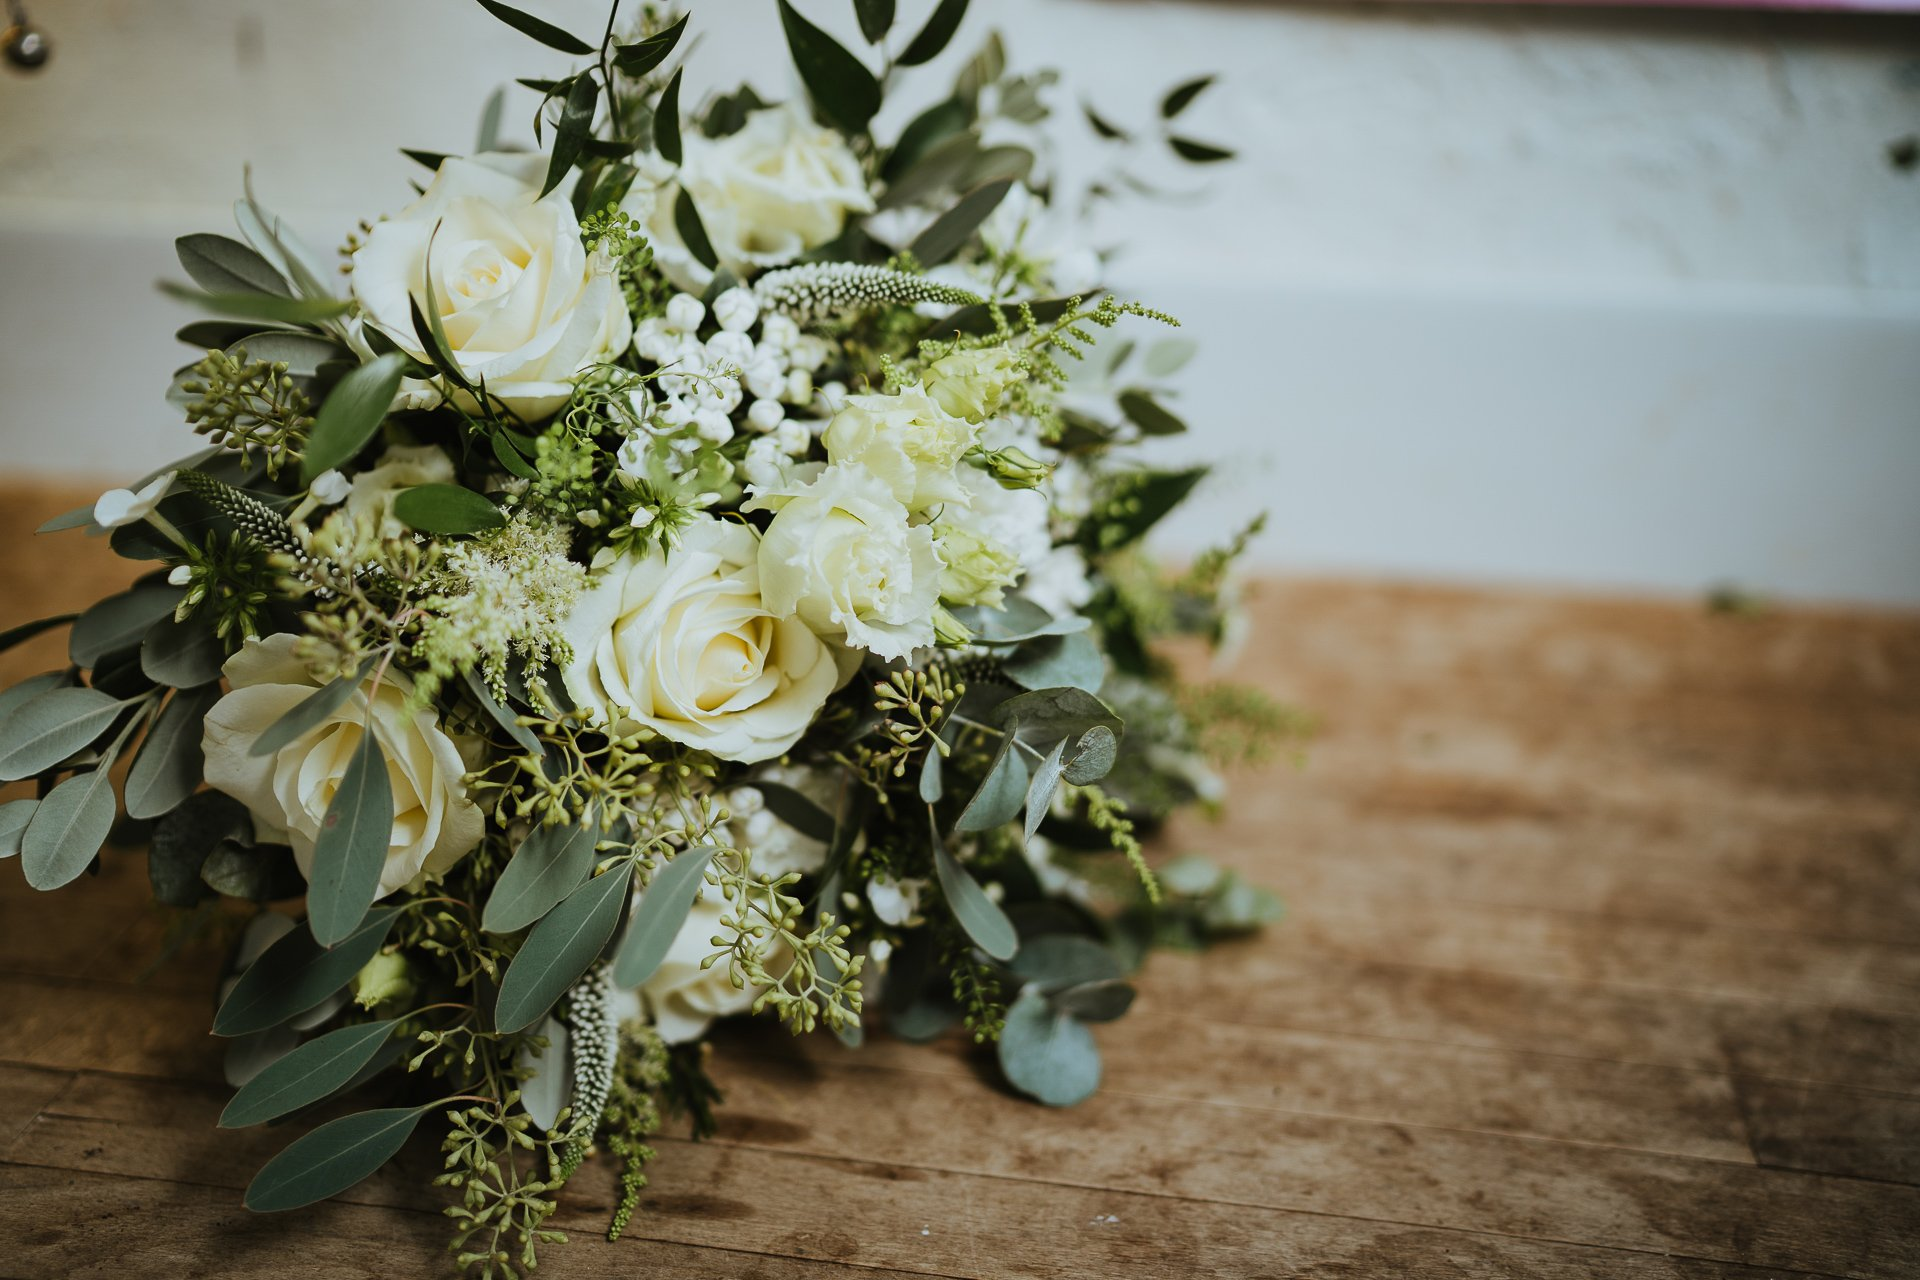 Beautifully textured green and white bridal bouquet